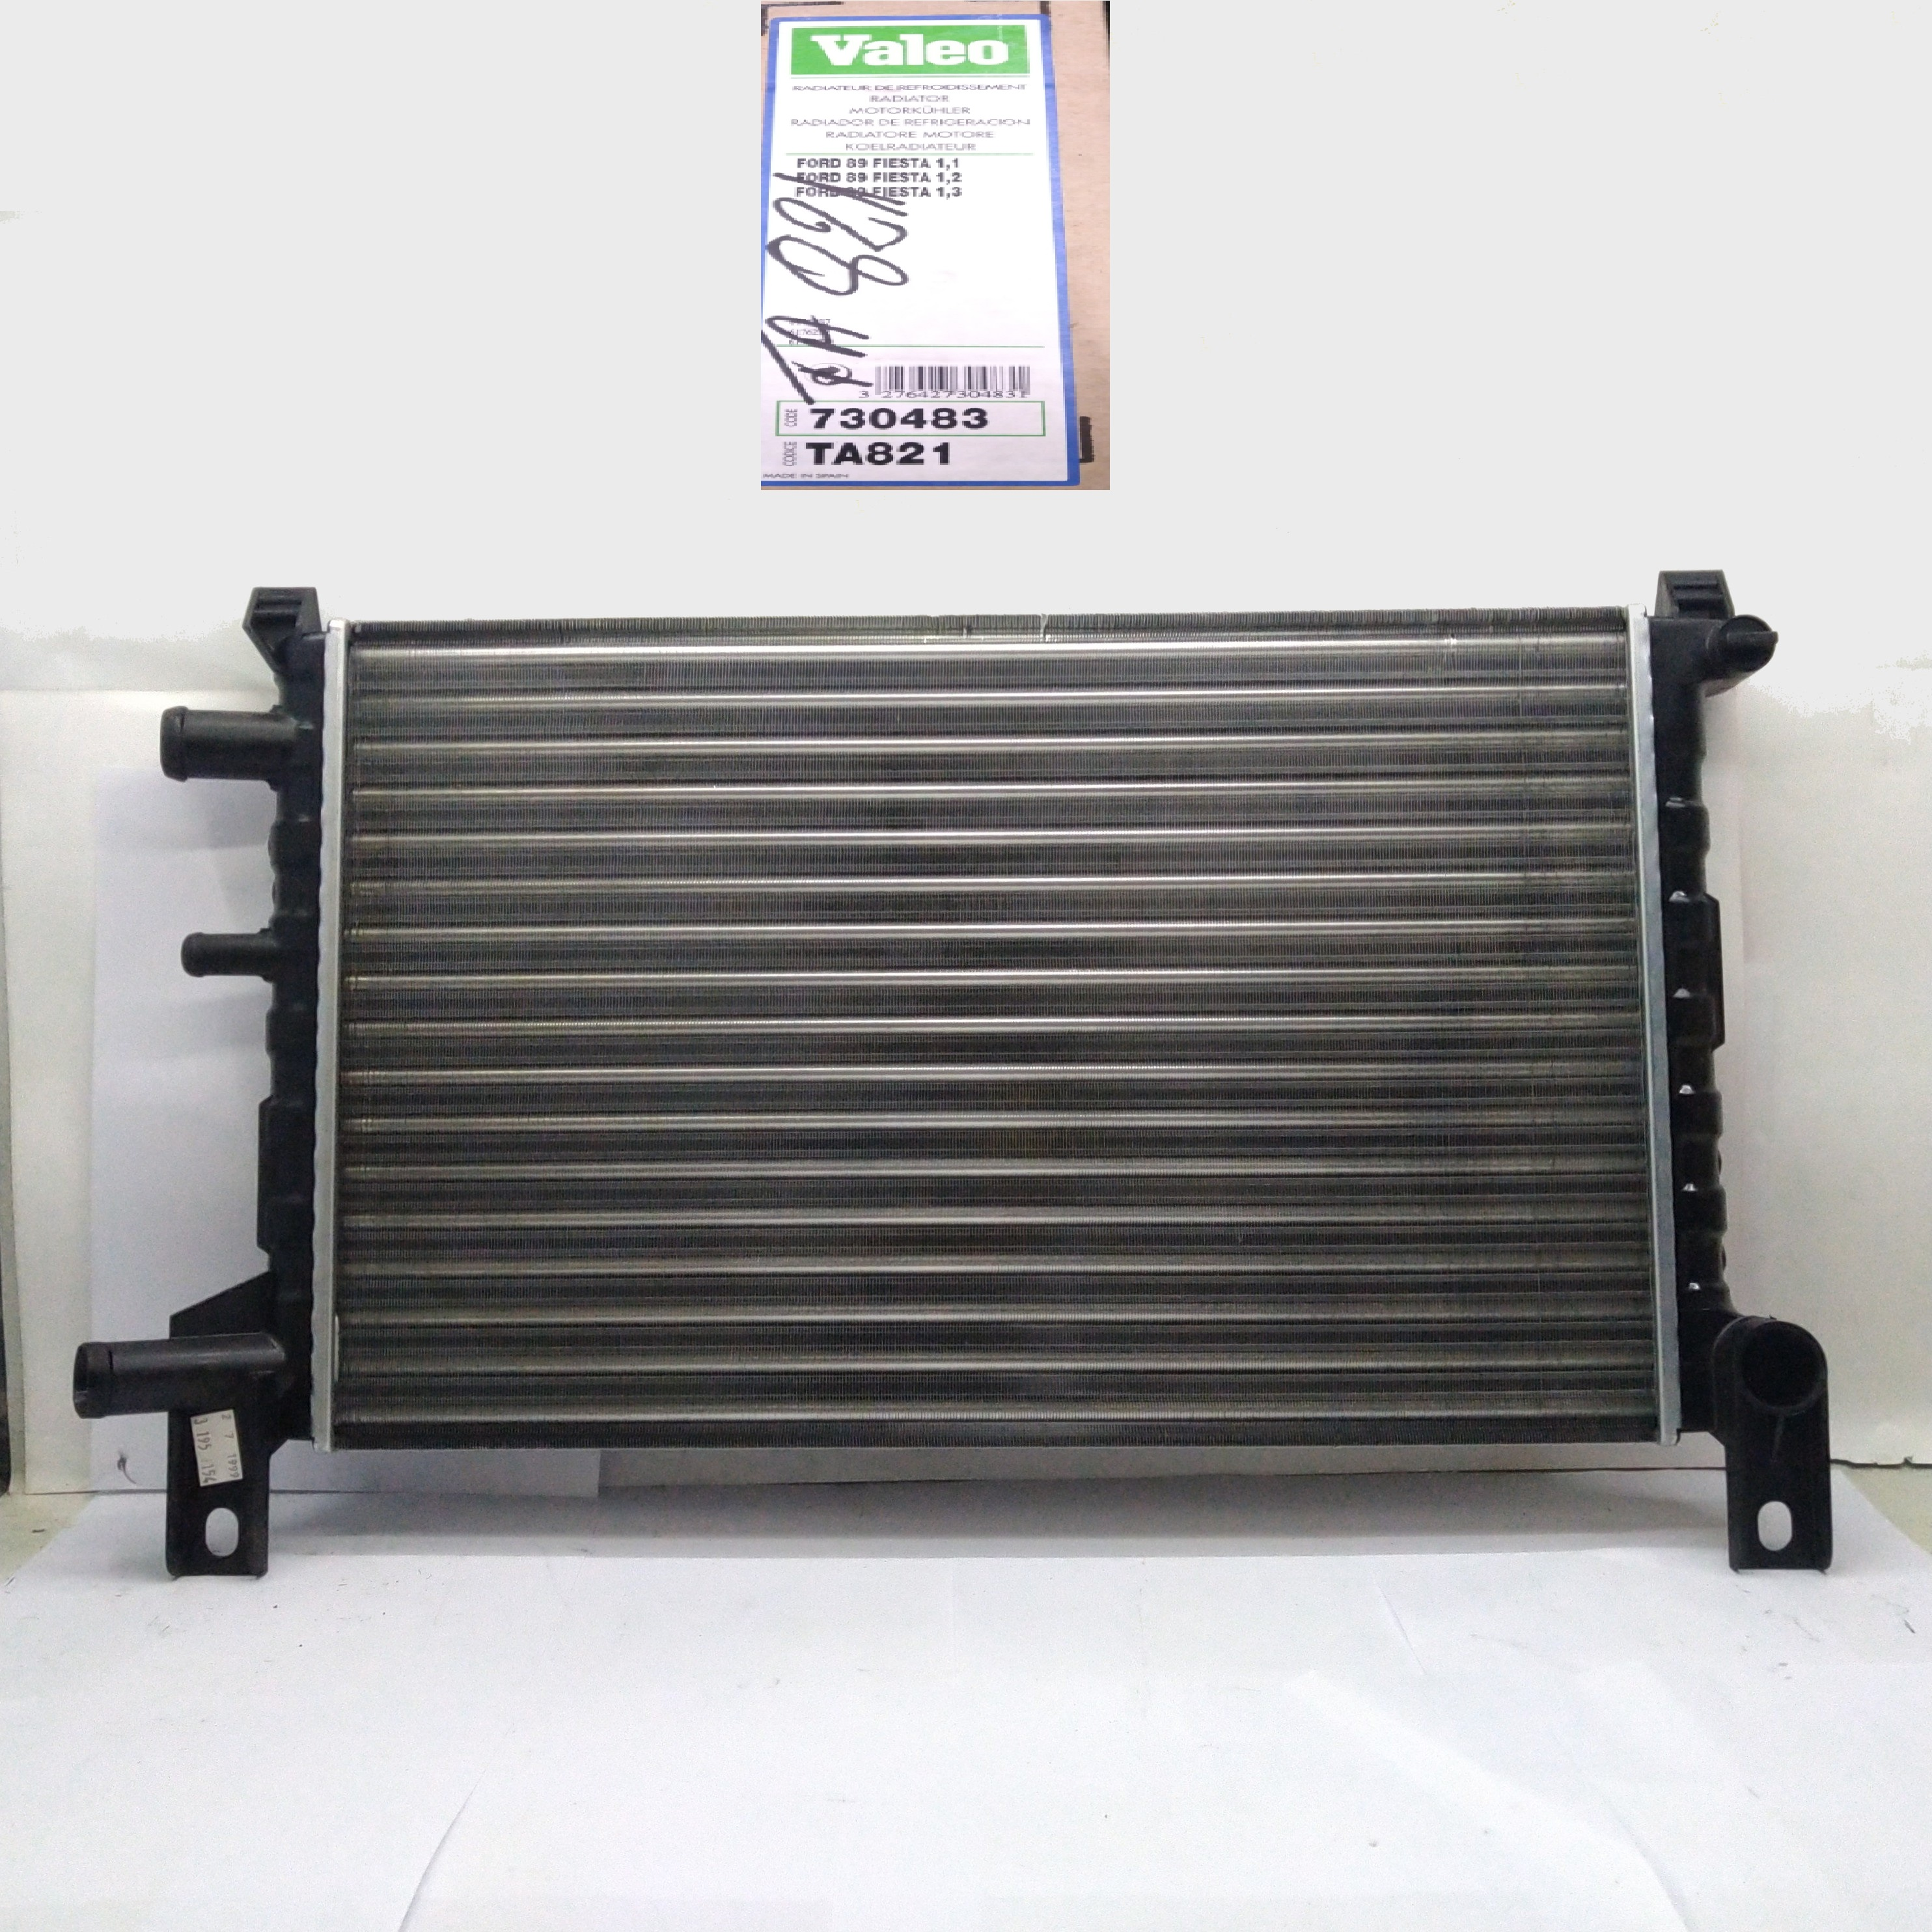 FORD FIESTA VALEO ENGINE COOLING RADIATOR FOR 1004038